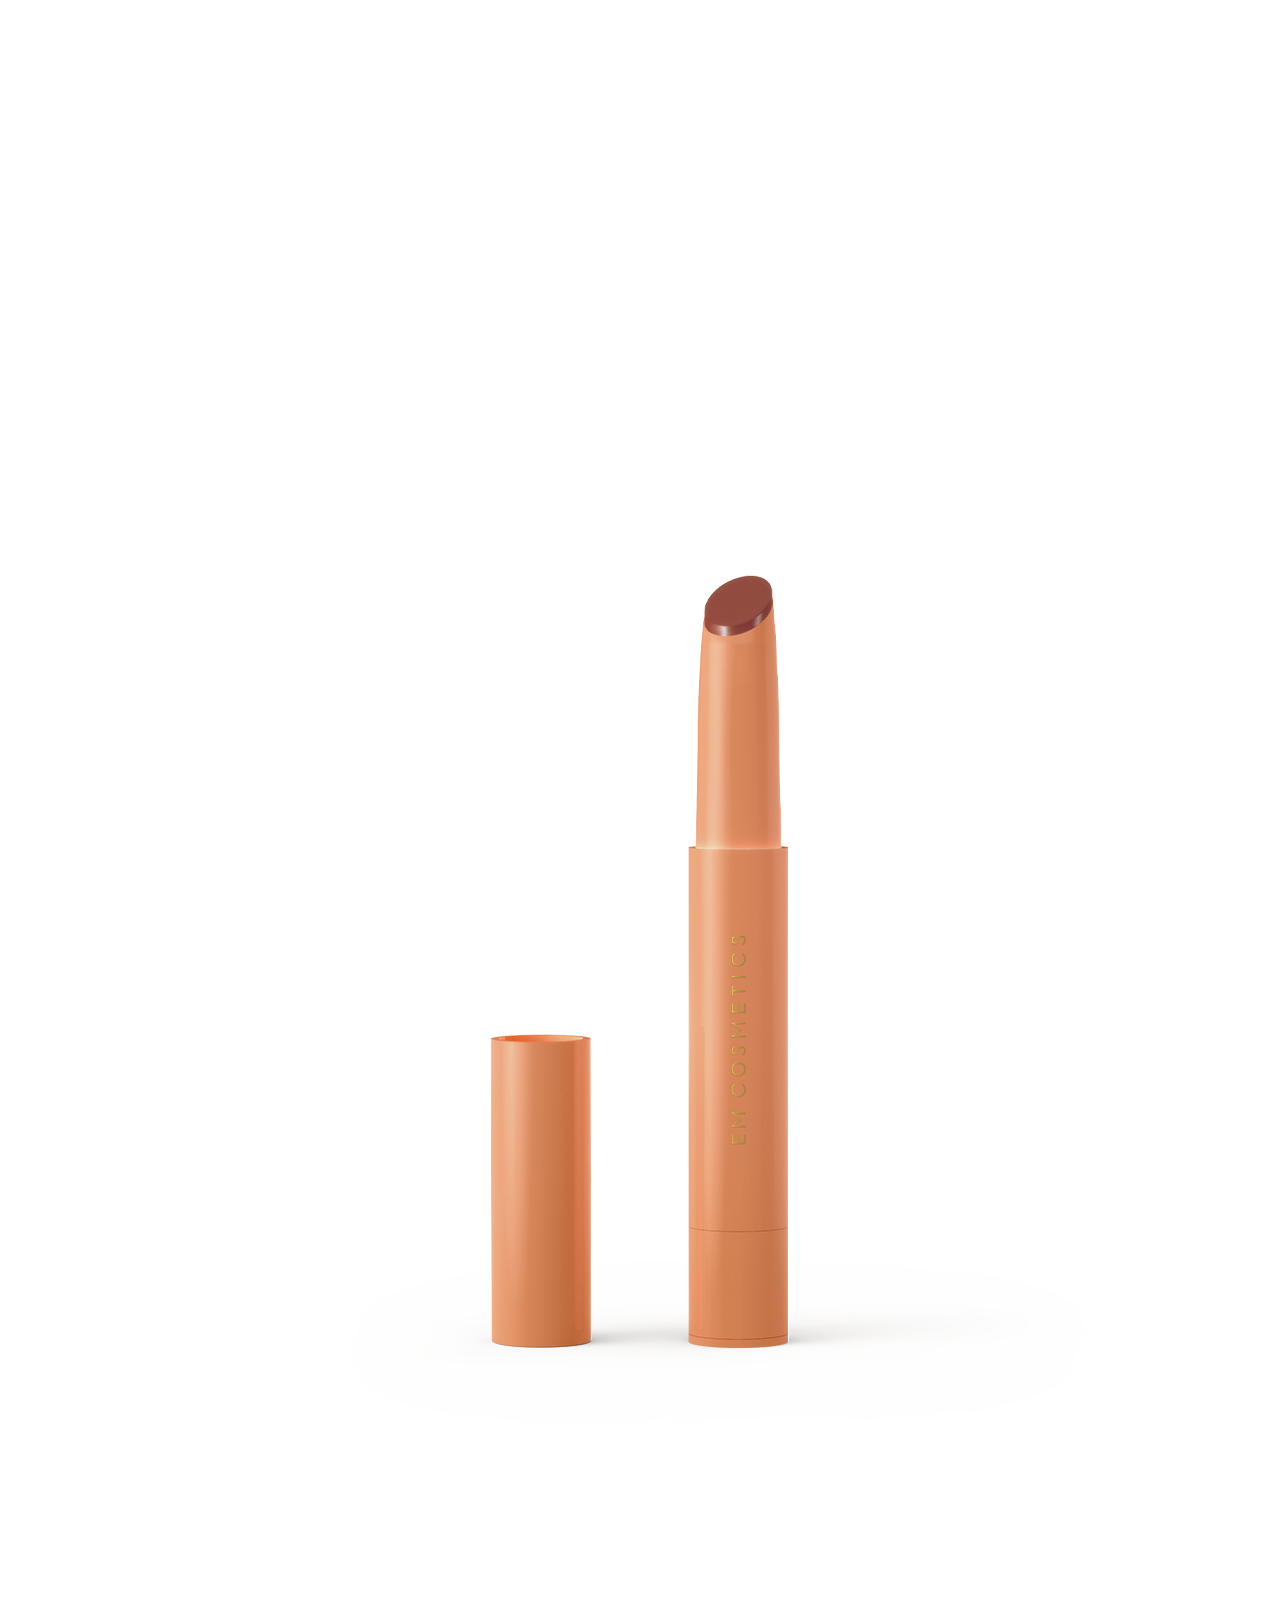 faded-clementine-lip-cushion-tinted-luminizer-open